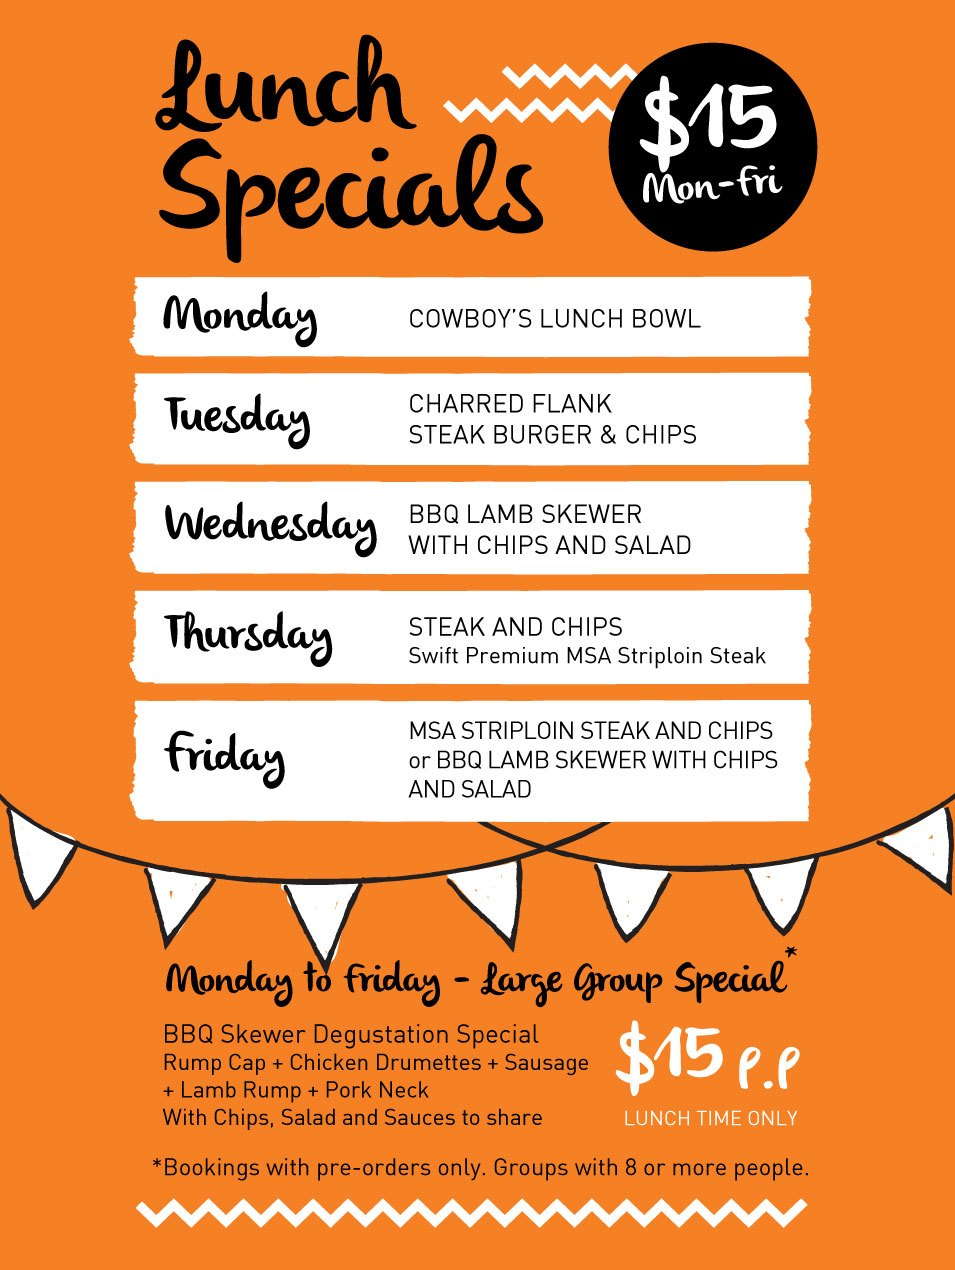 Lunch Specials - $15, Monday to Friday